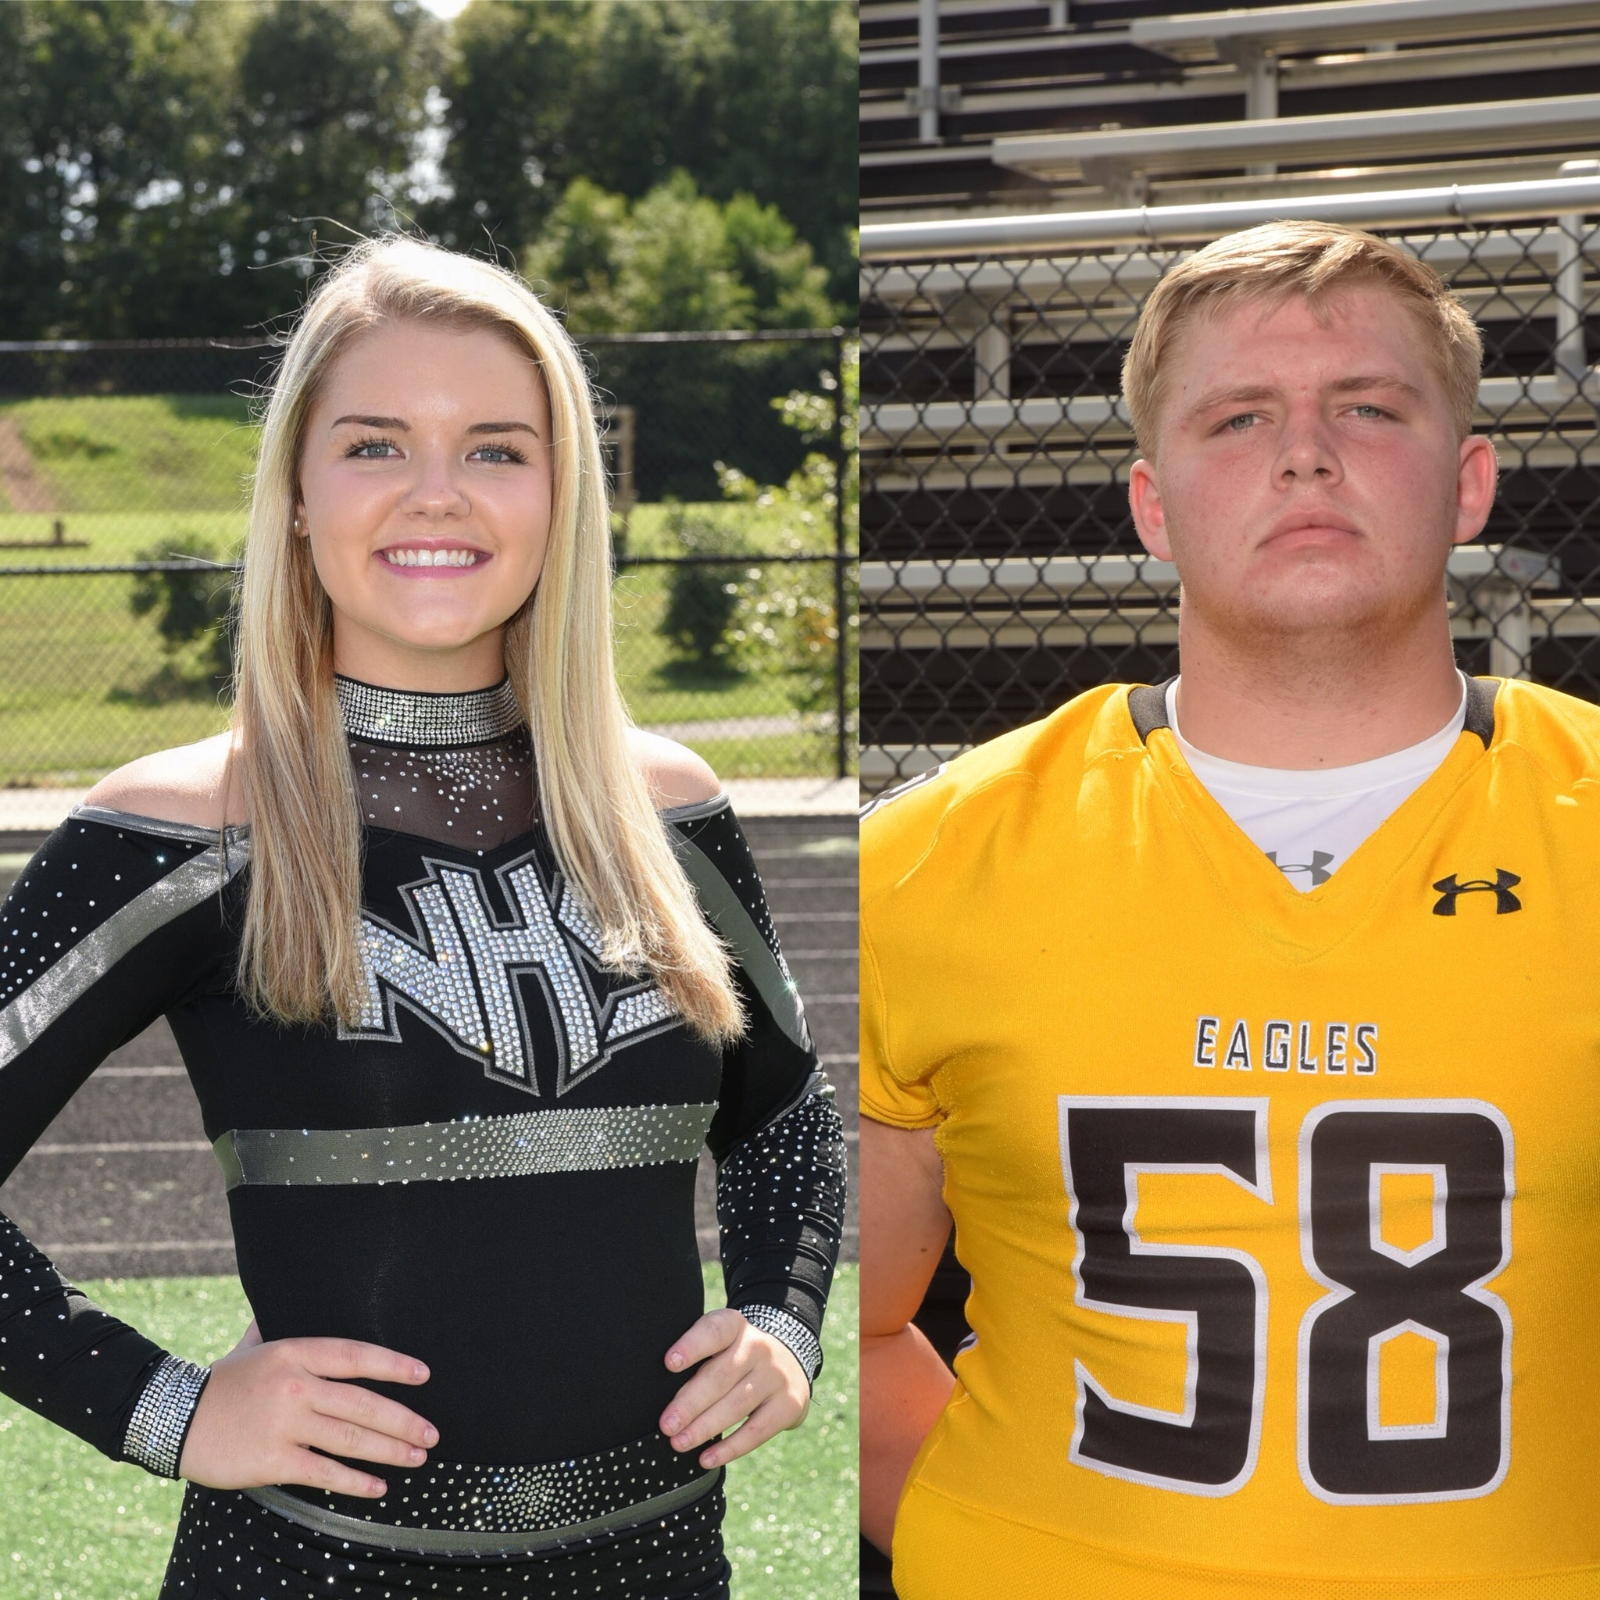 NHS Athletics November Athletes of the Month: Matt Wukitch and Anna Myers